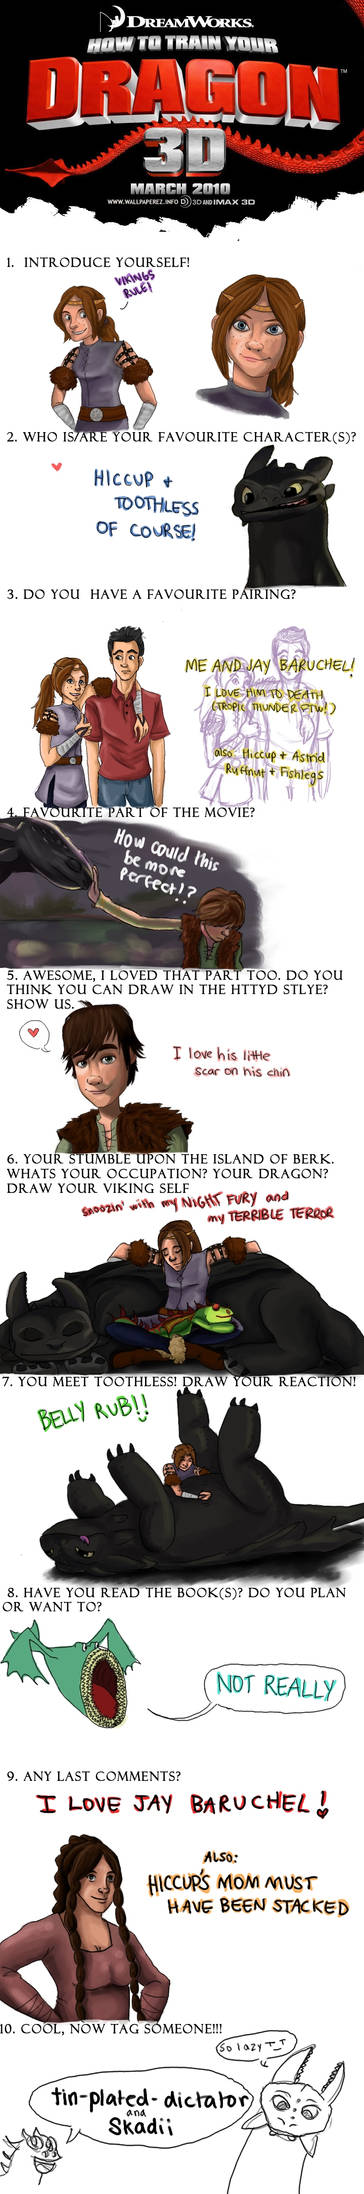 How To Train Your Dragon Meme